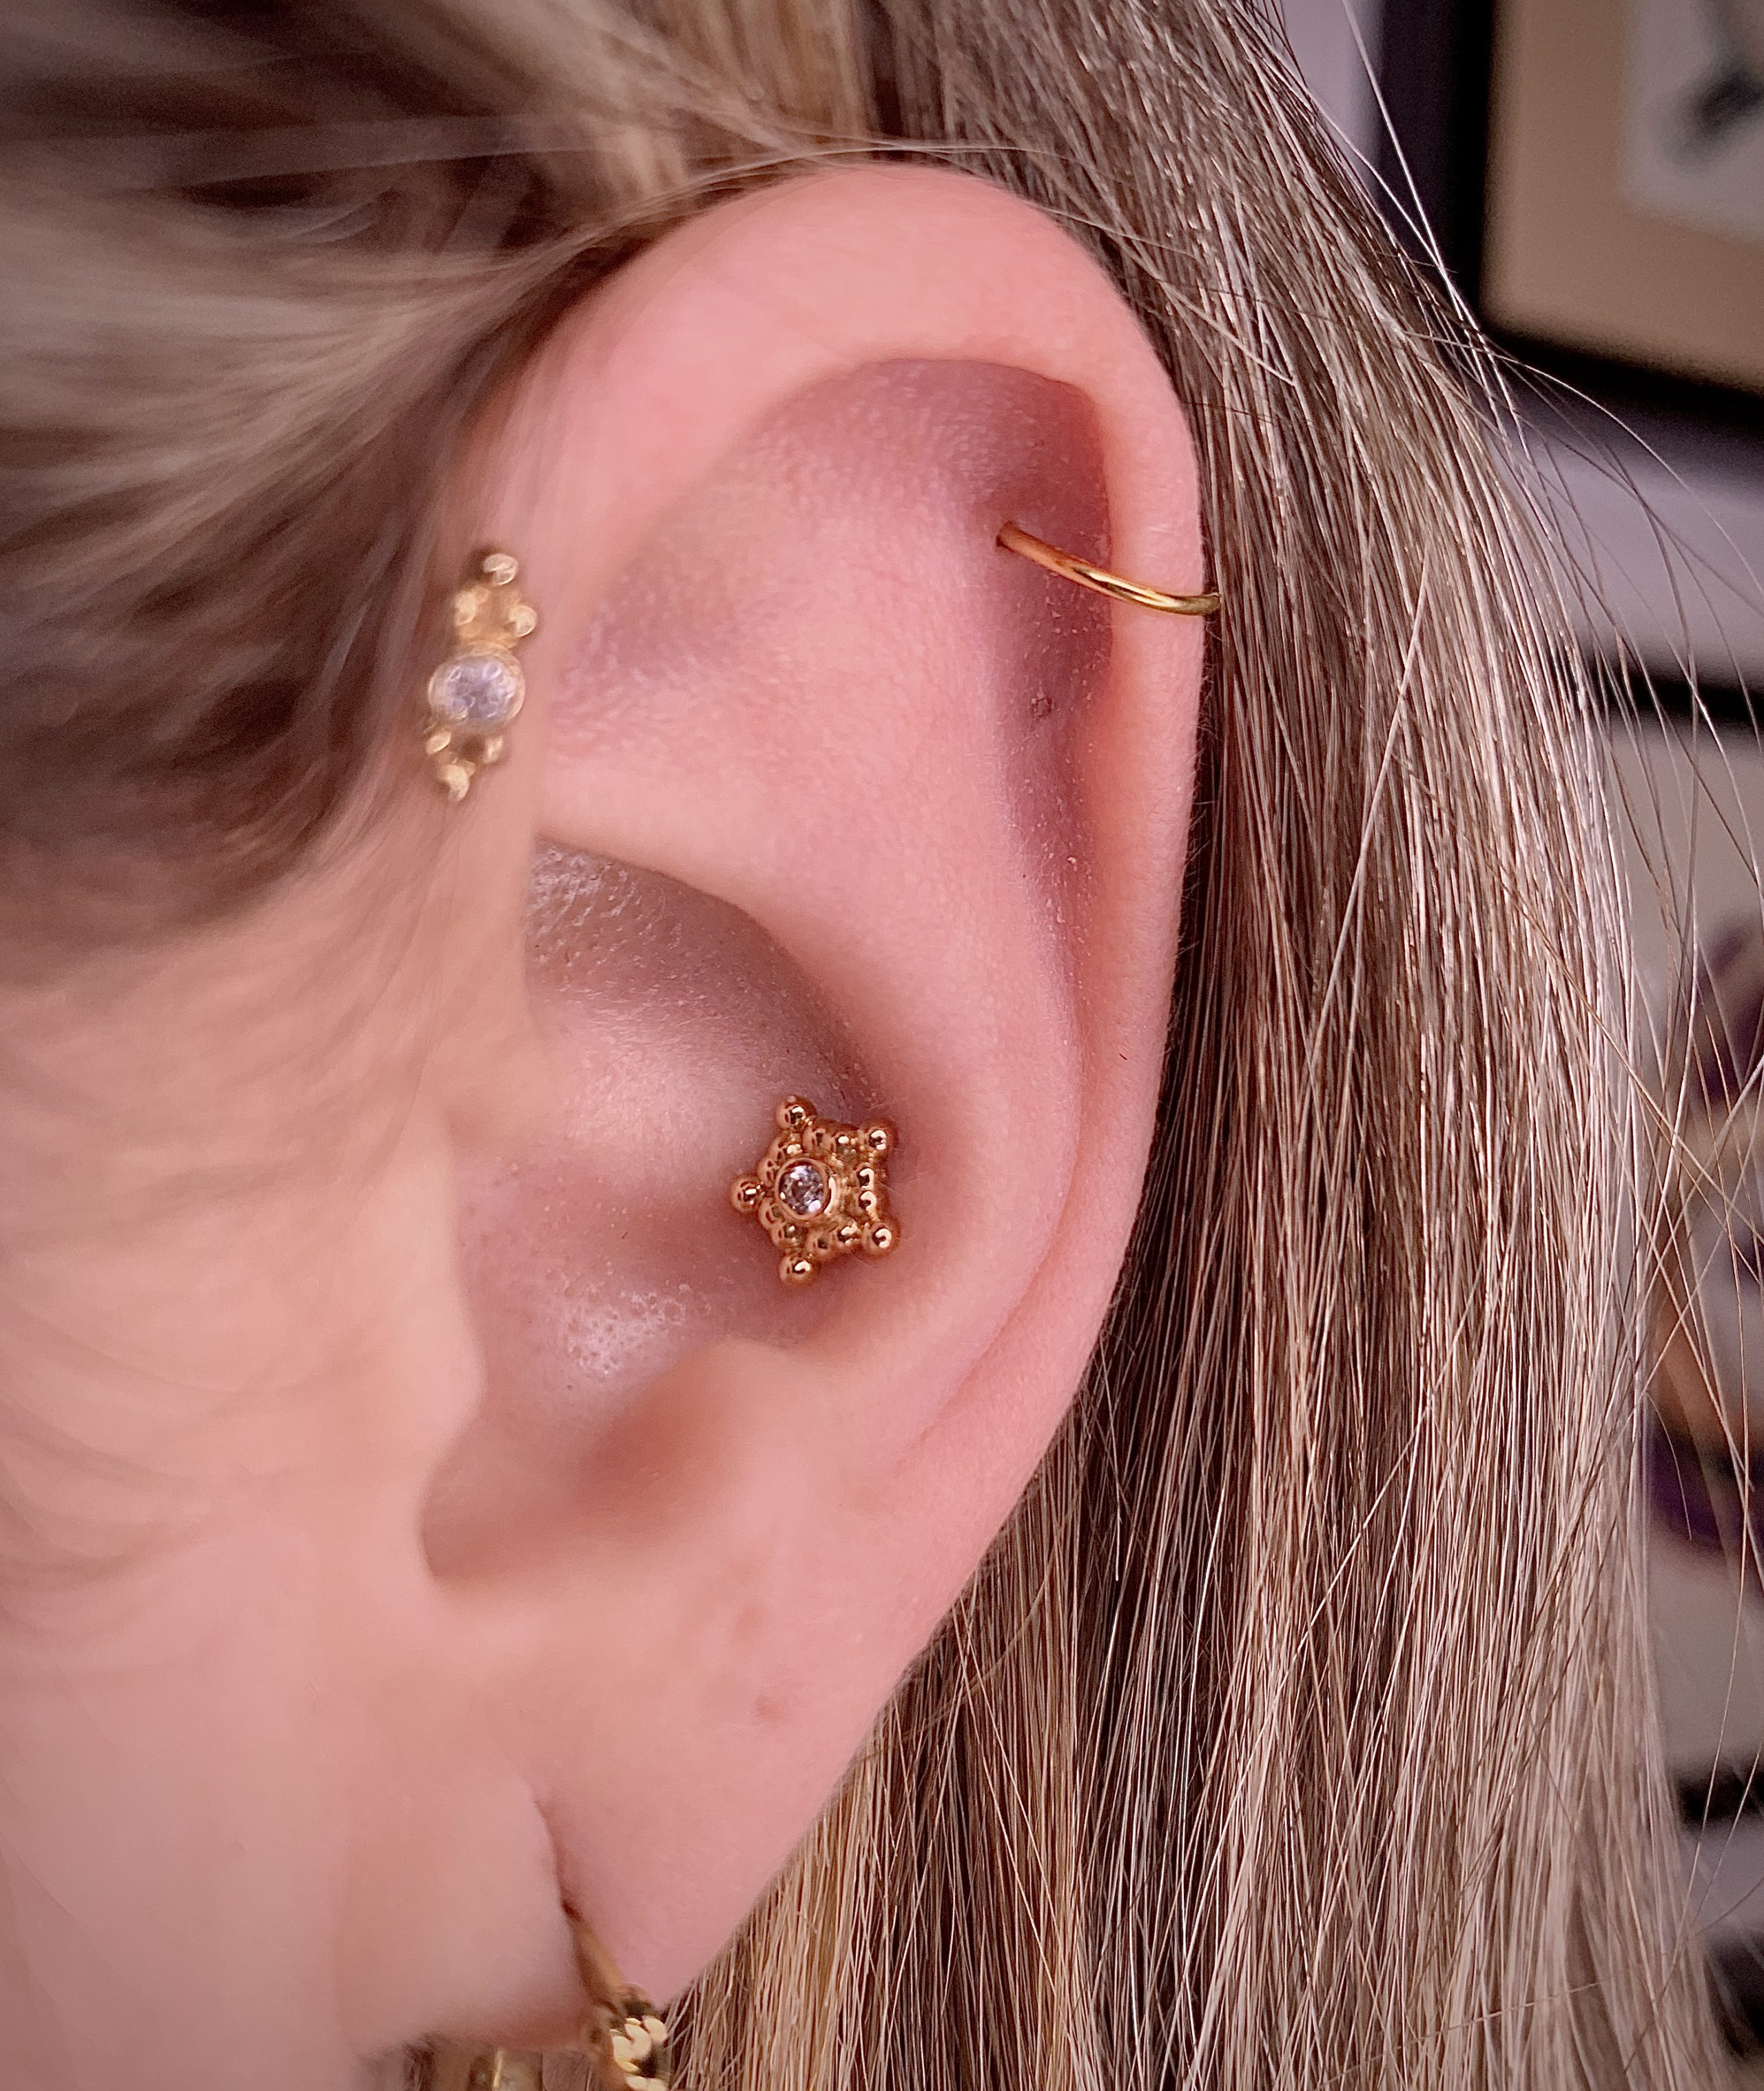 Ear Piercing upgrade. Jewelry tops are from anatometal inc. 18k yellow gold Sabrinas. Piercing Barcelona